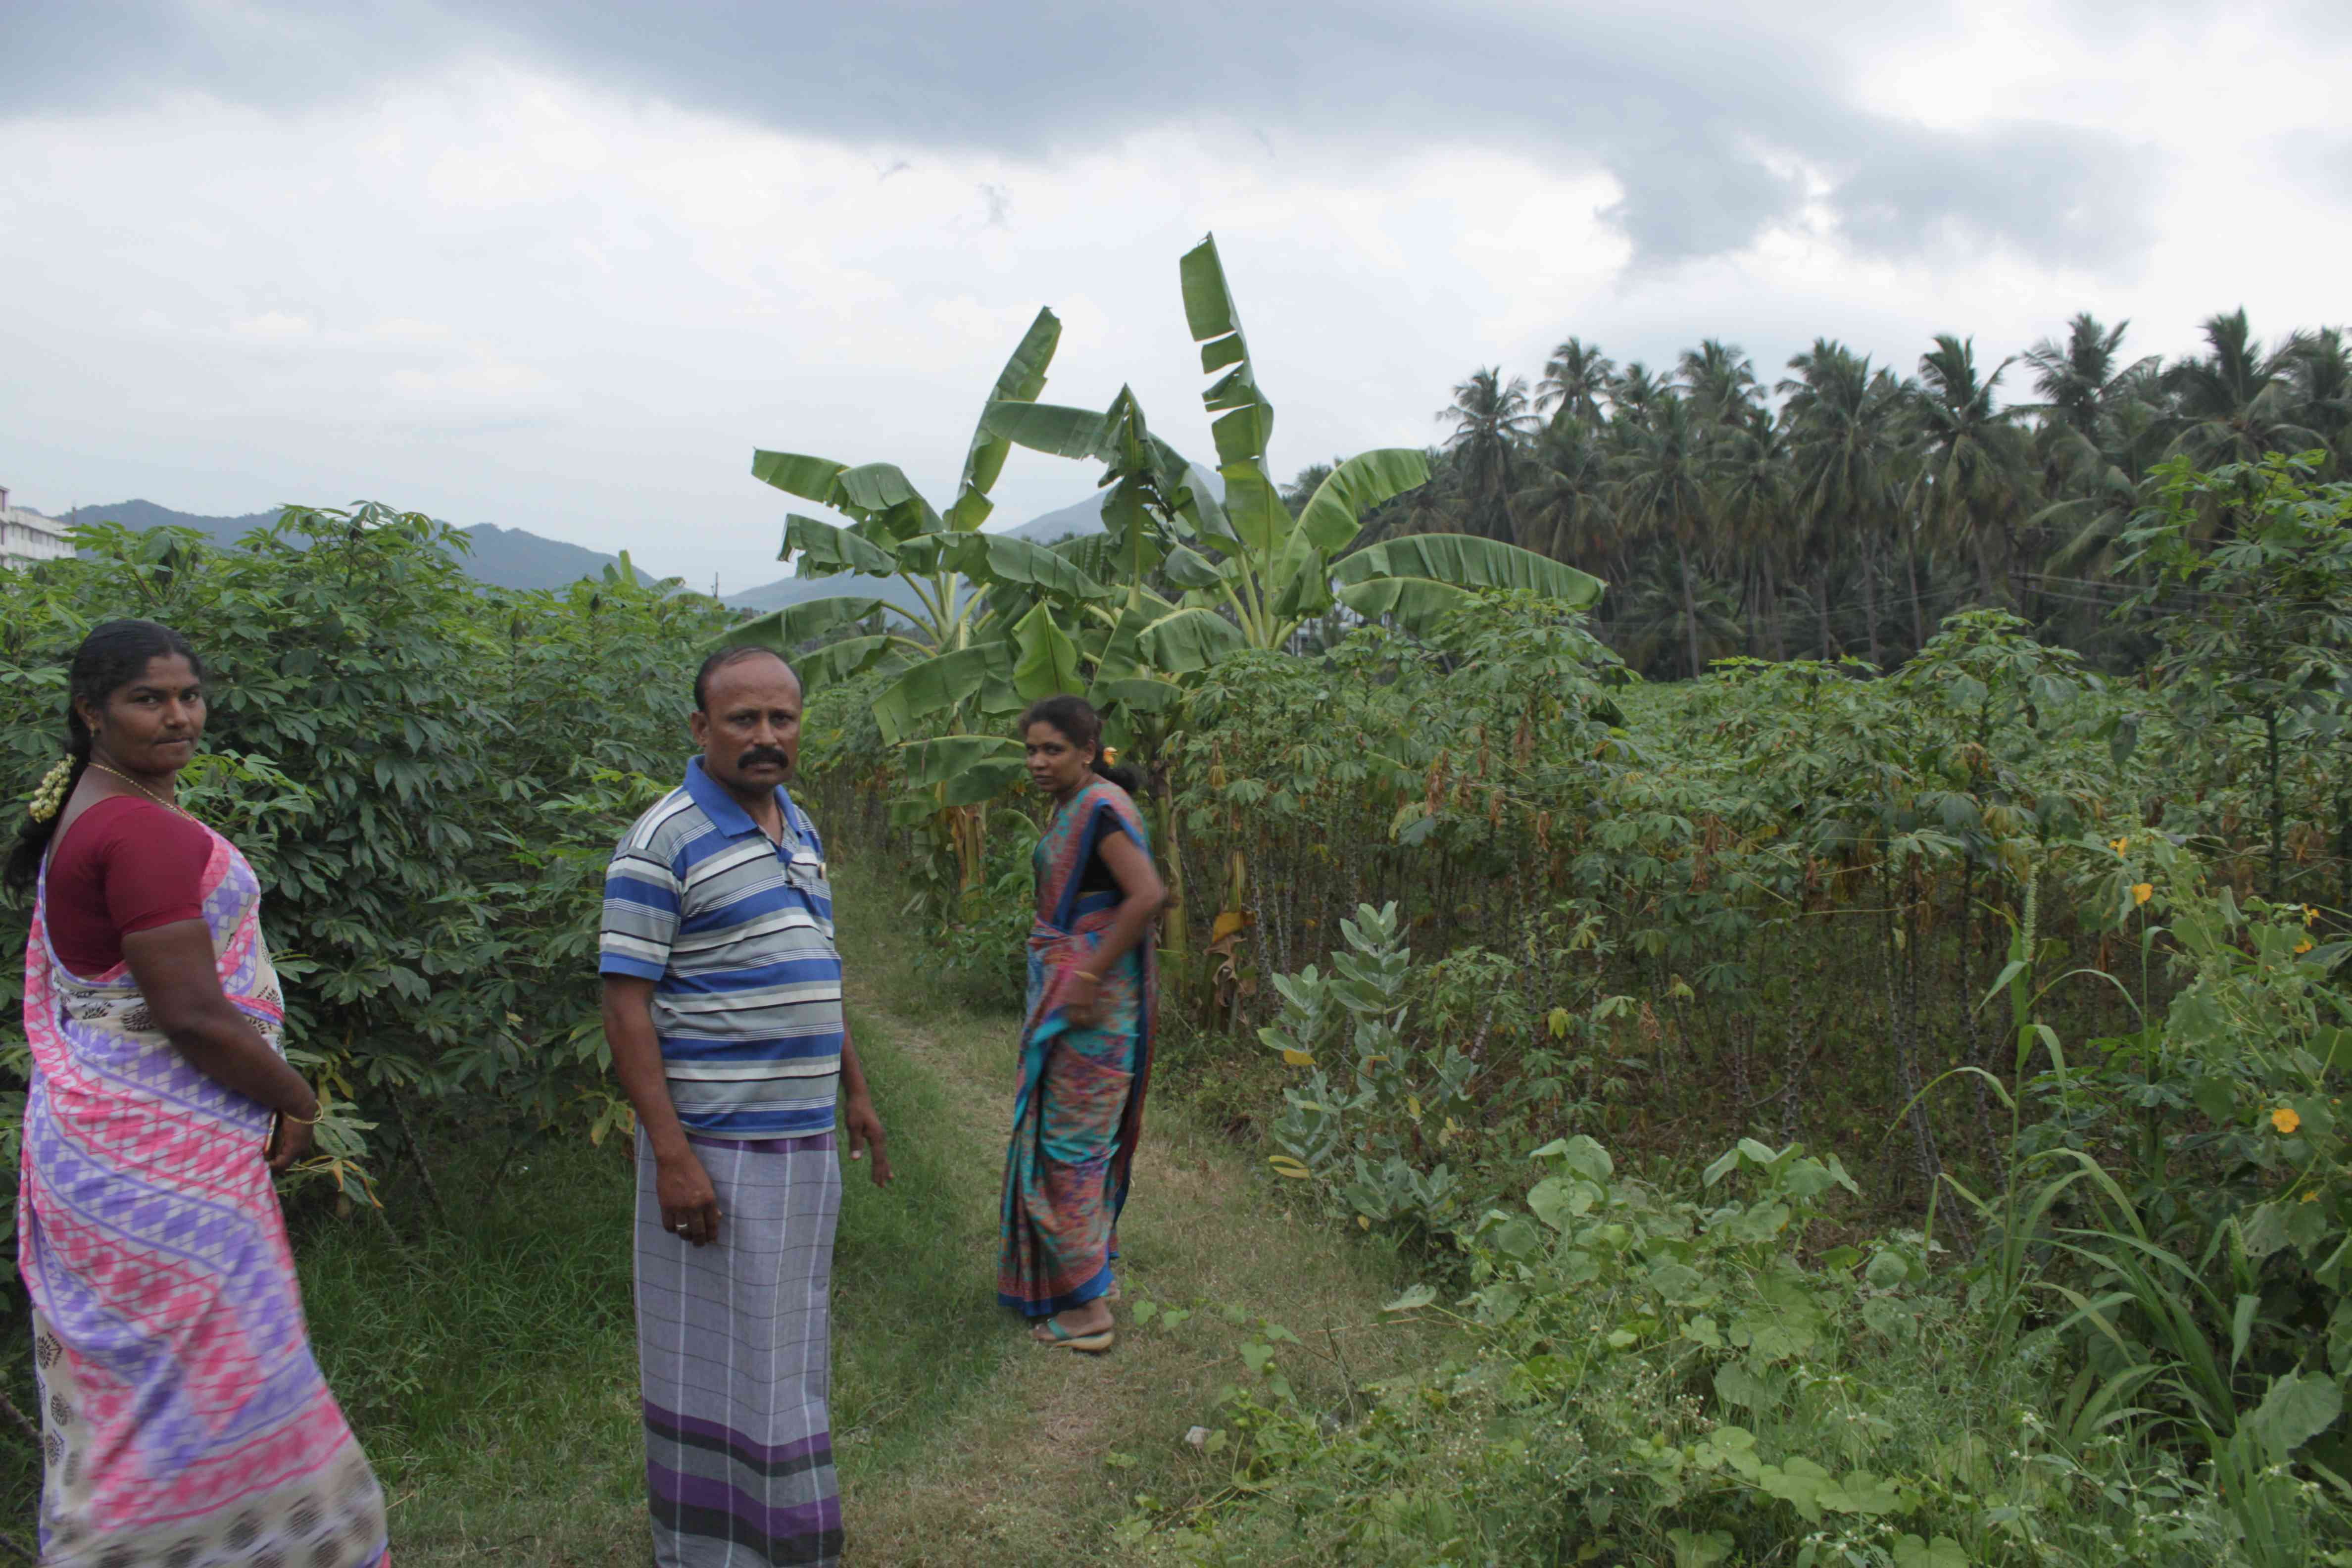 Sivagami, a resident of Ramalingapuram, along with her neighbours walk through the agricultural field that will be acquired for corridor